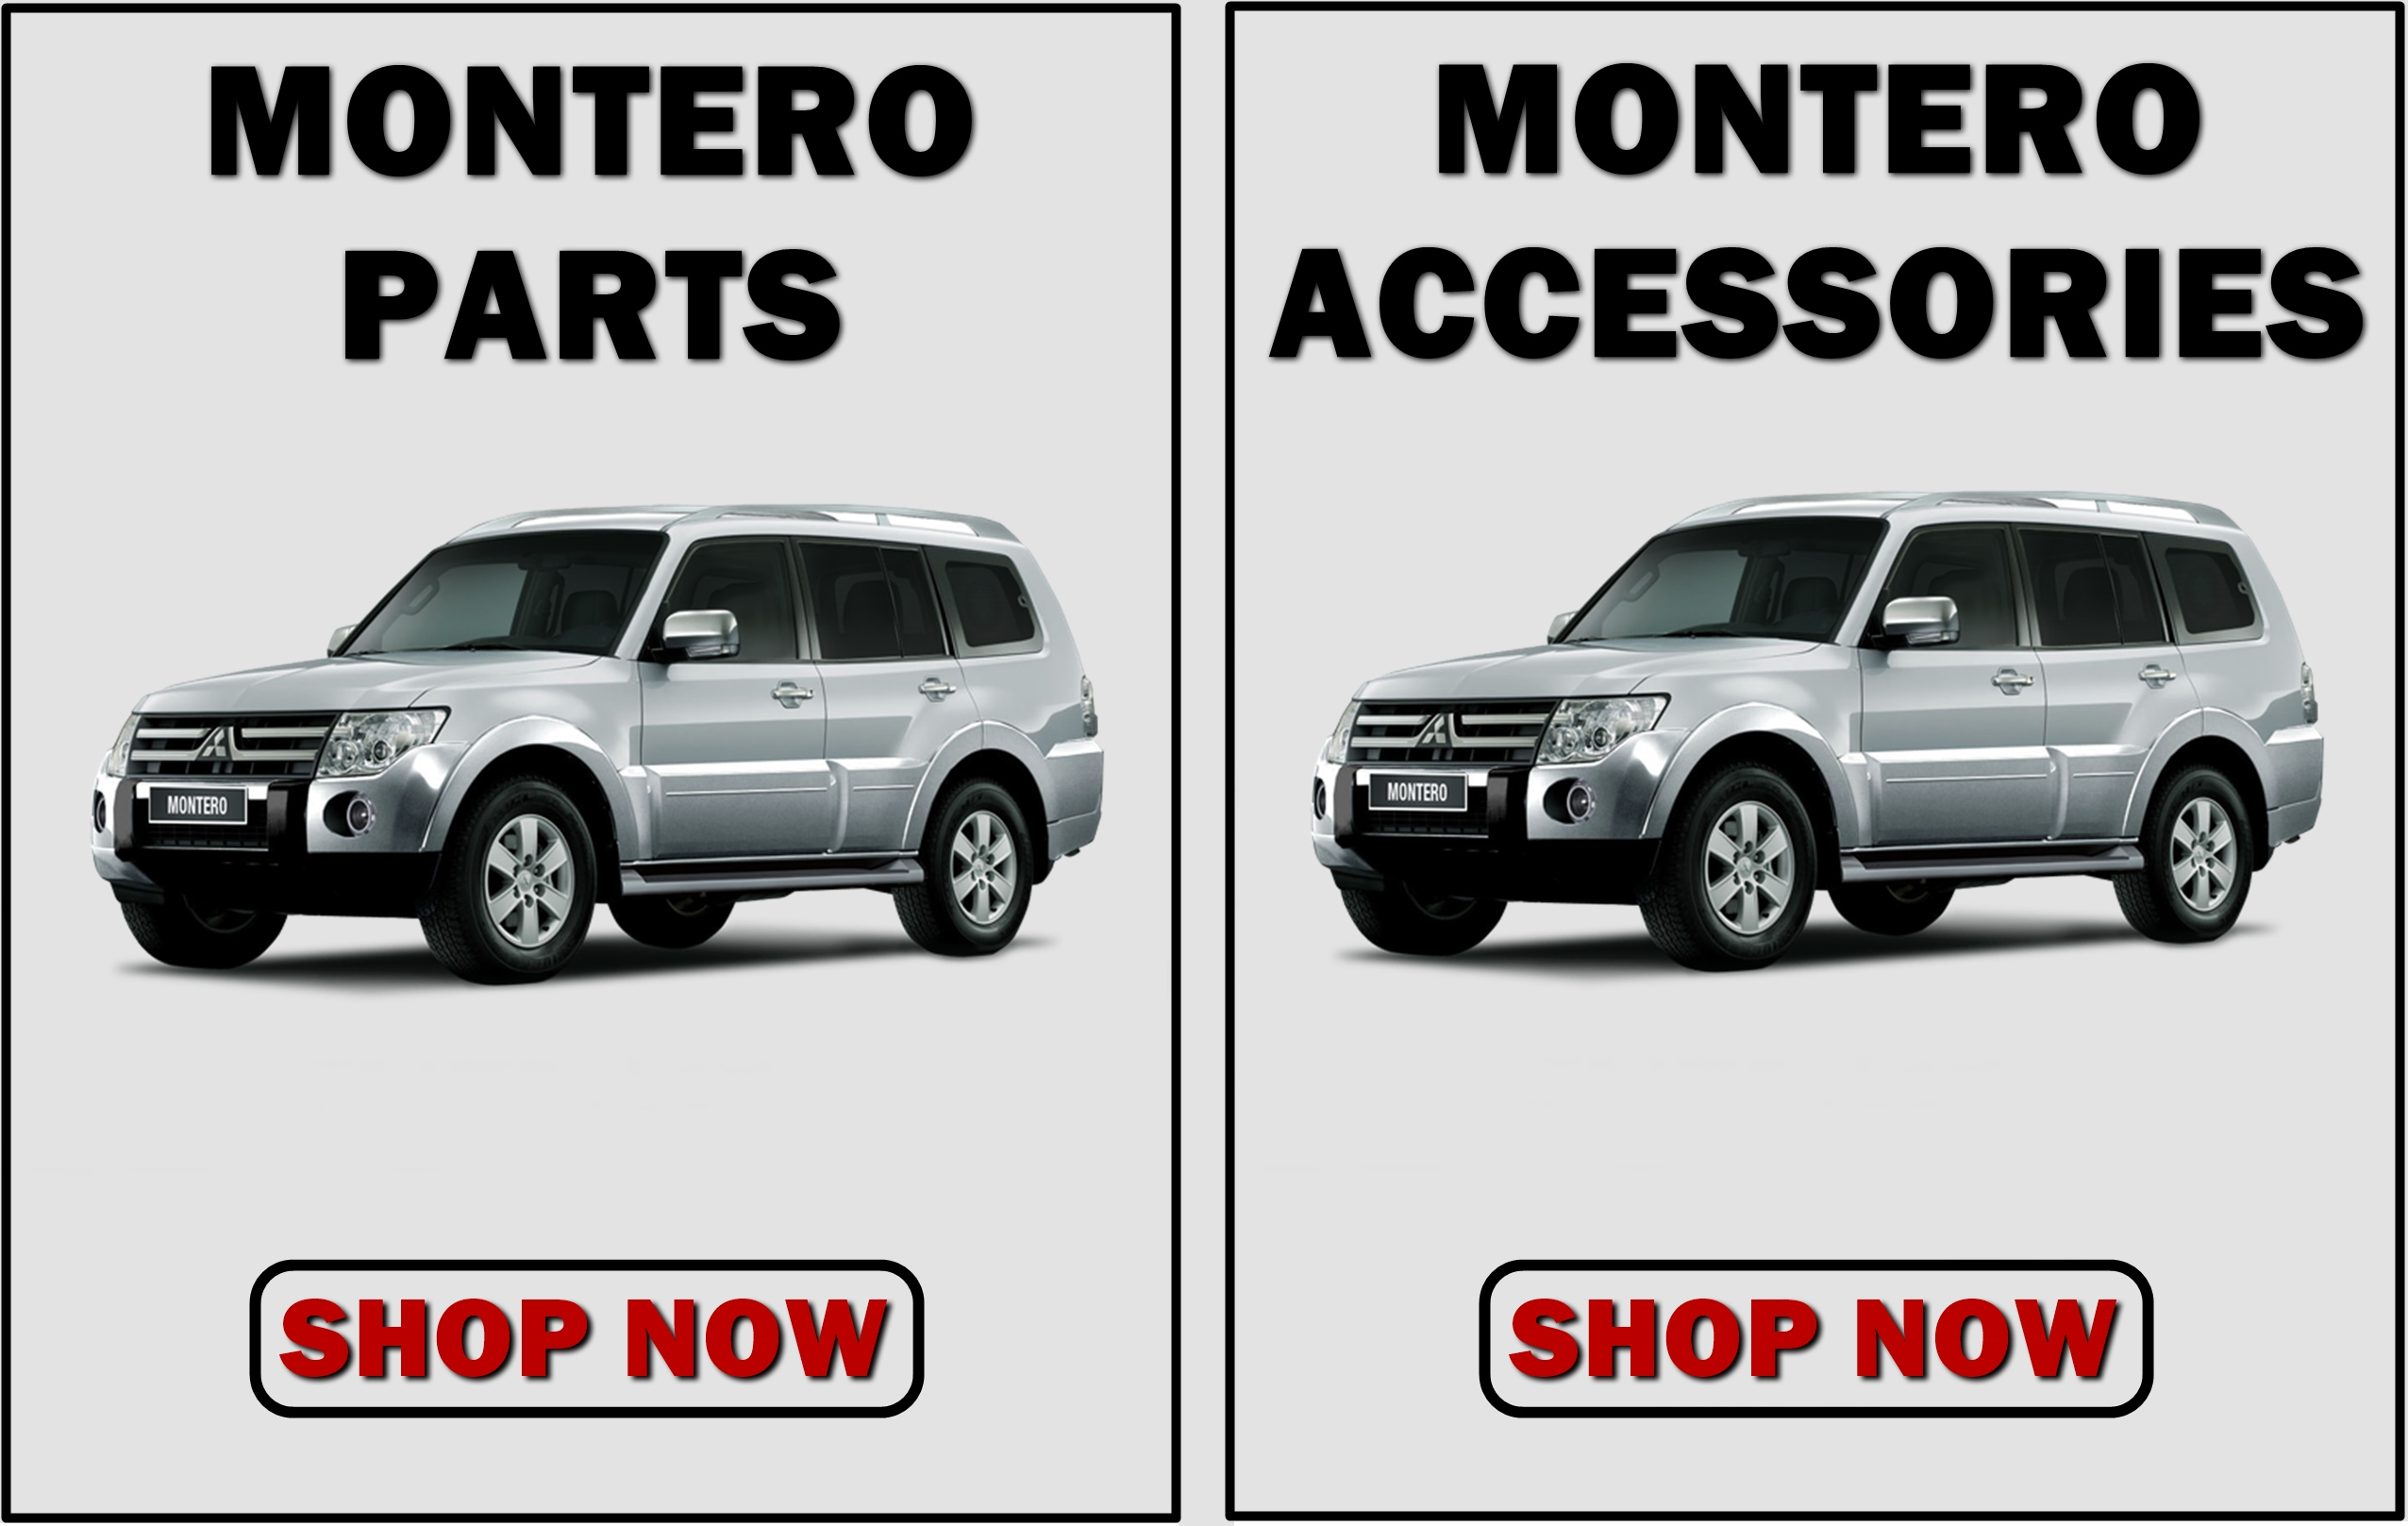 raider dealership dealer mitsubishi fort new walton parts and htm accessories in